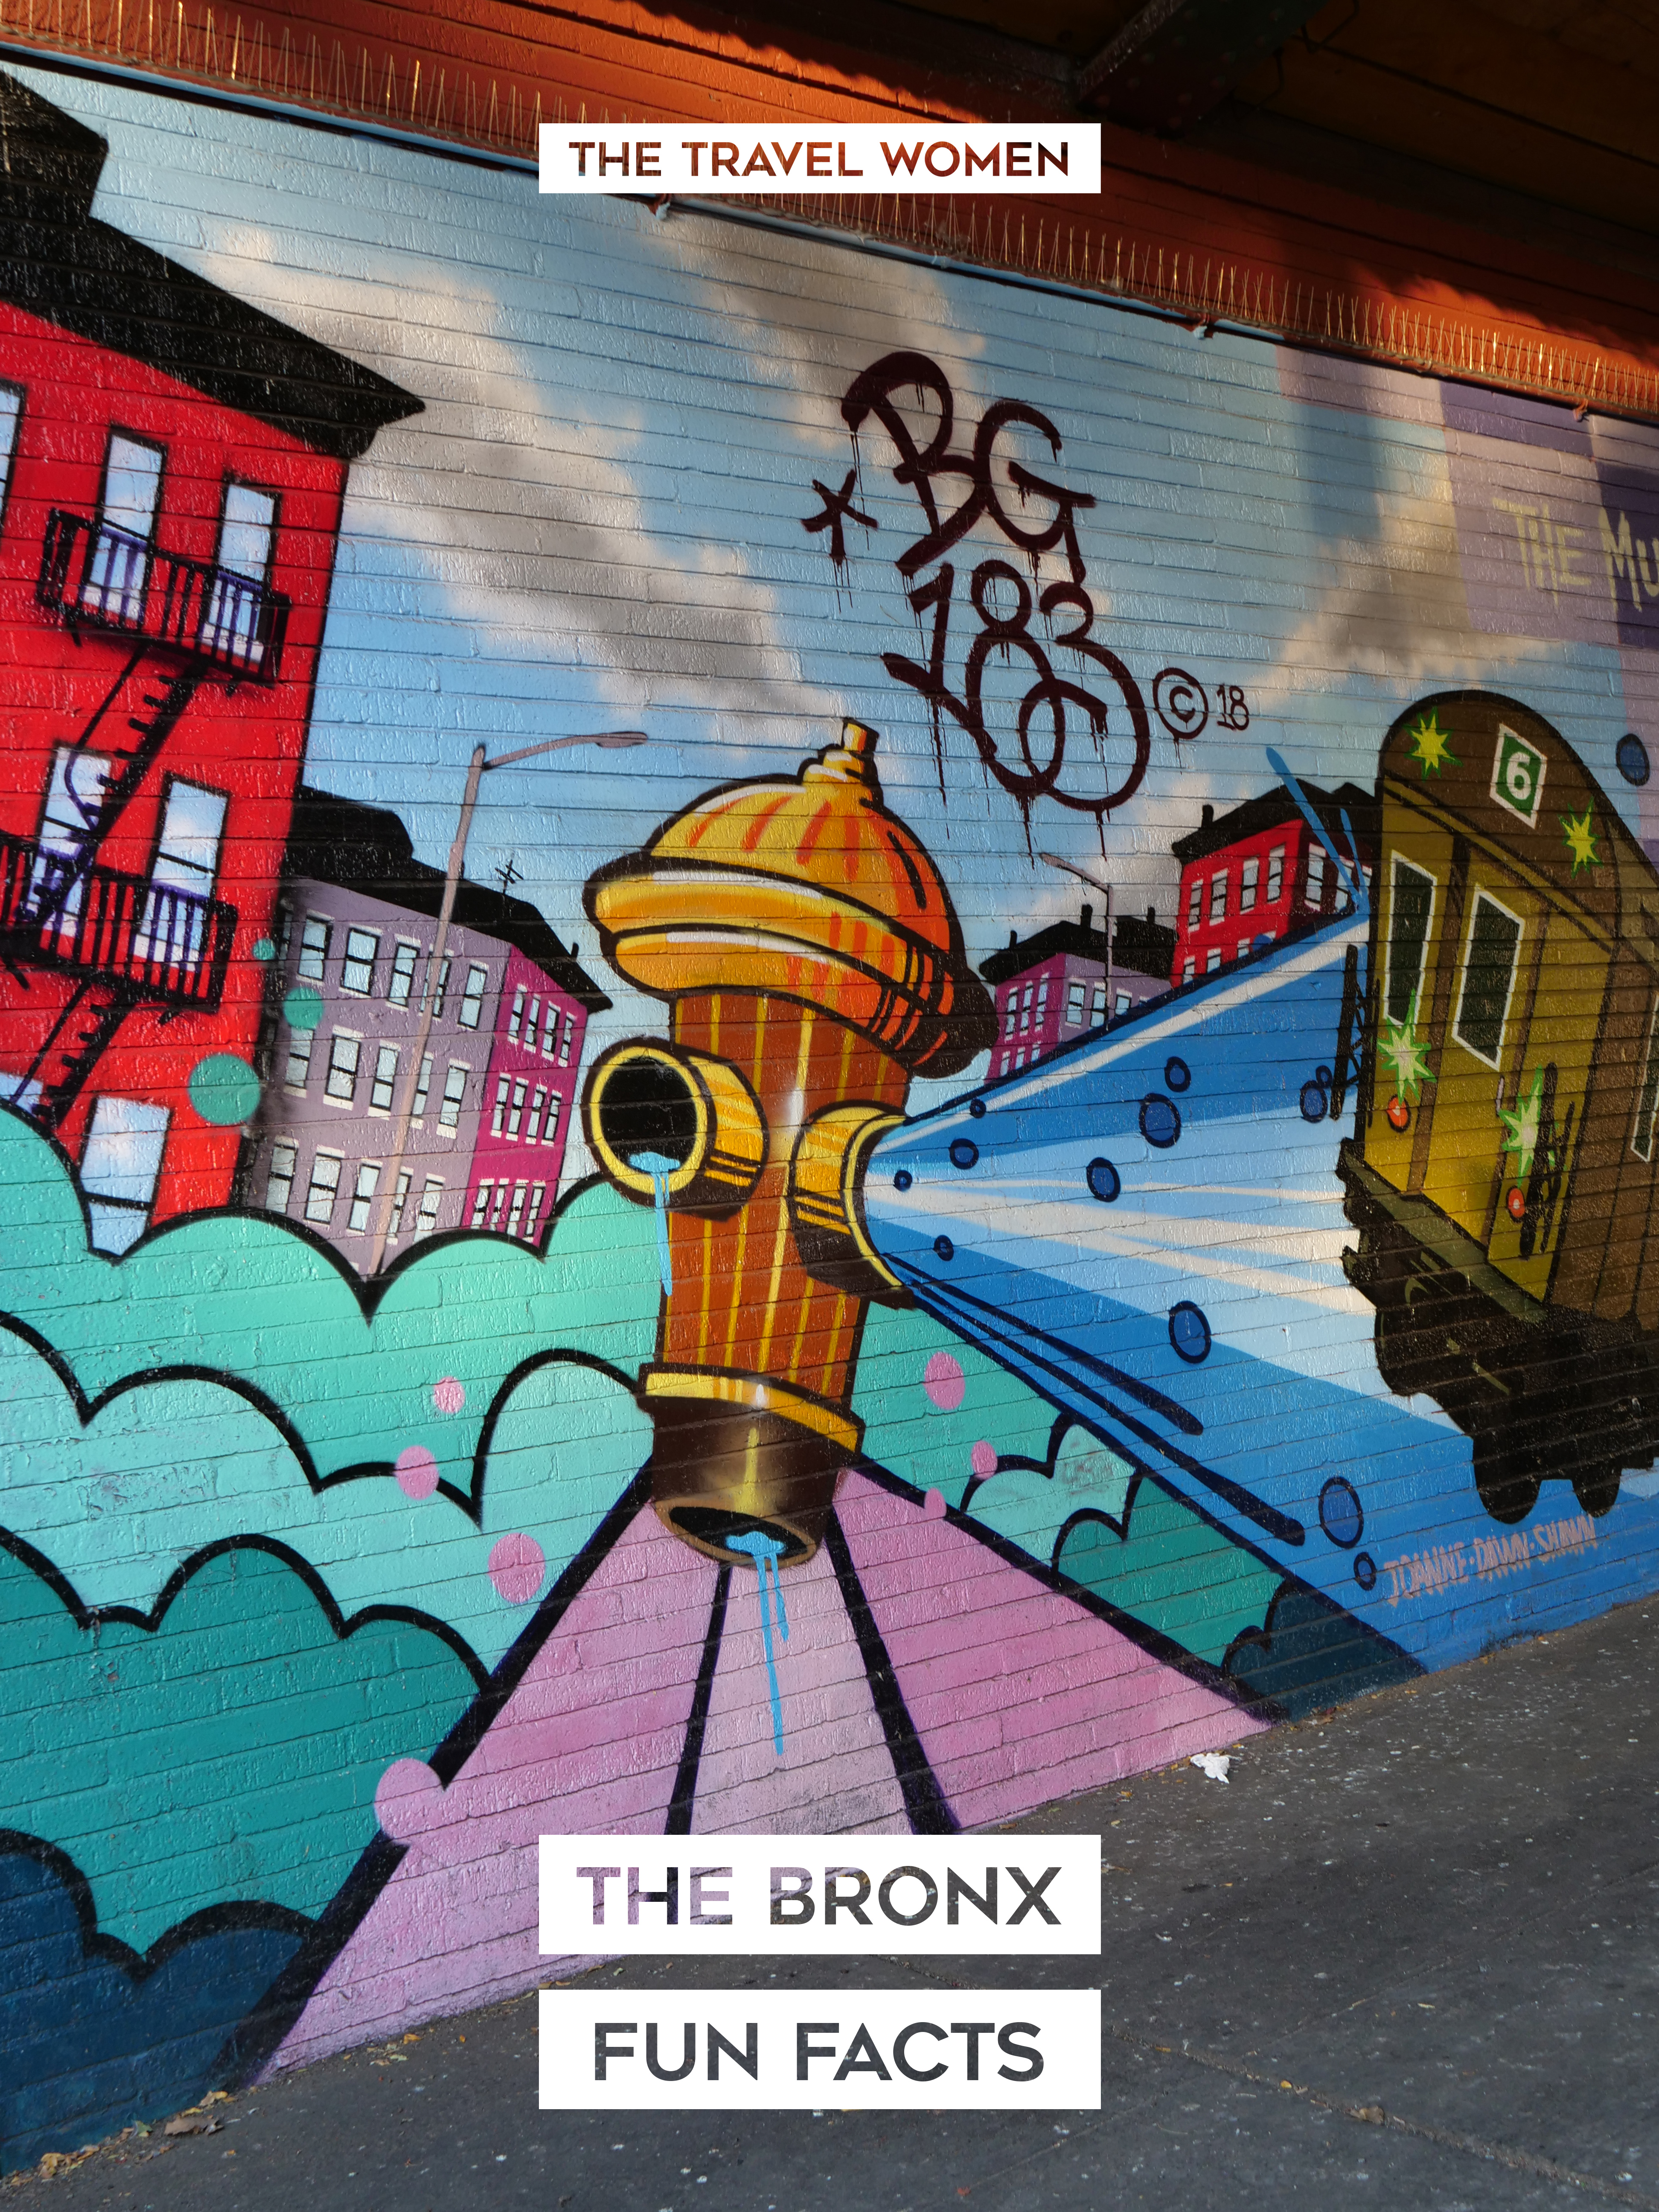 0 The Bronx Fun Facts history things you didn't know abut The Bronx hydrant graffiti subway train